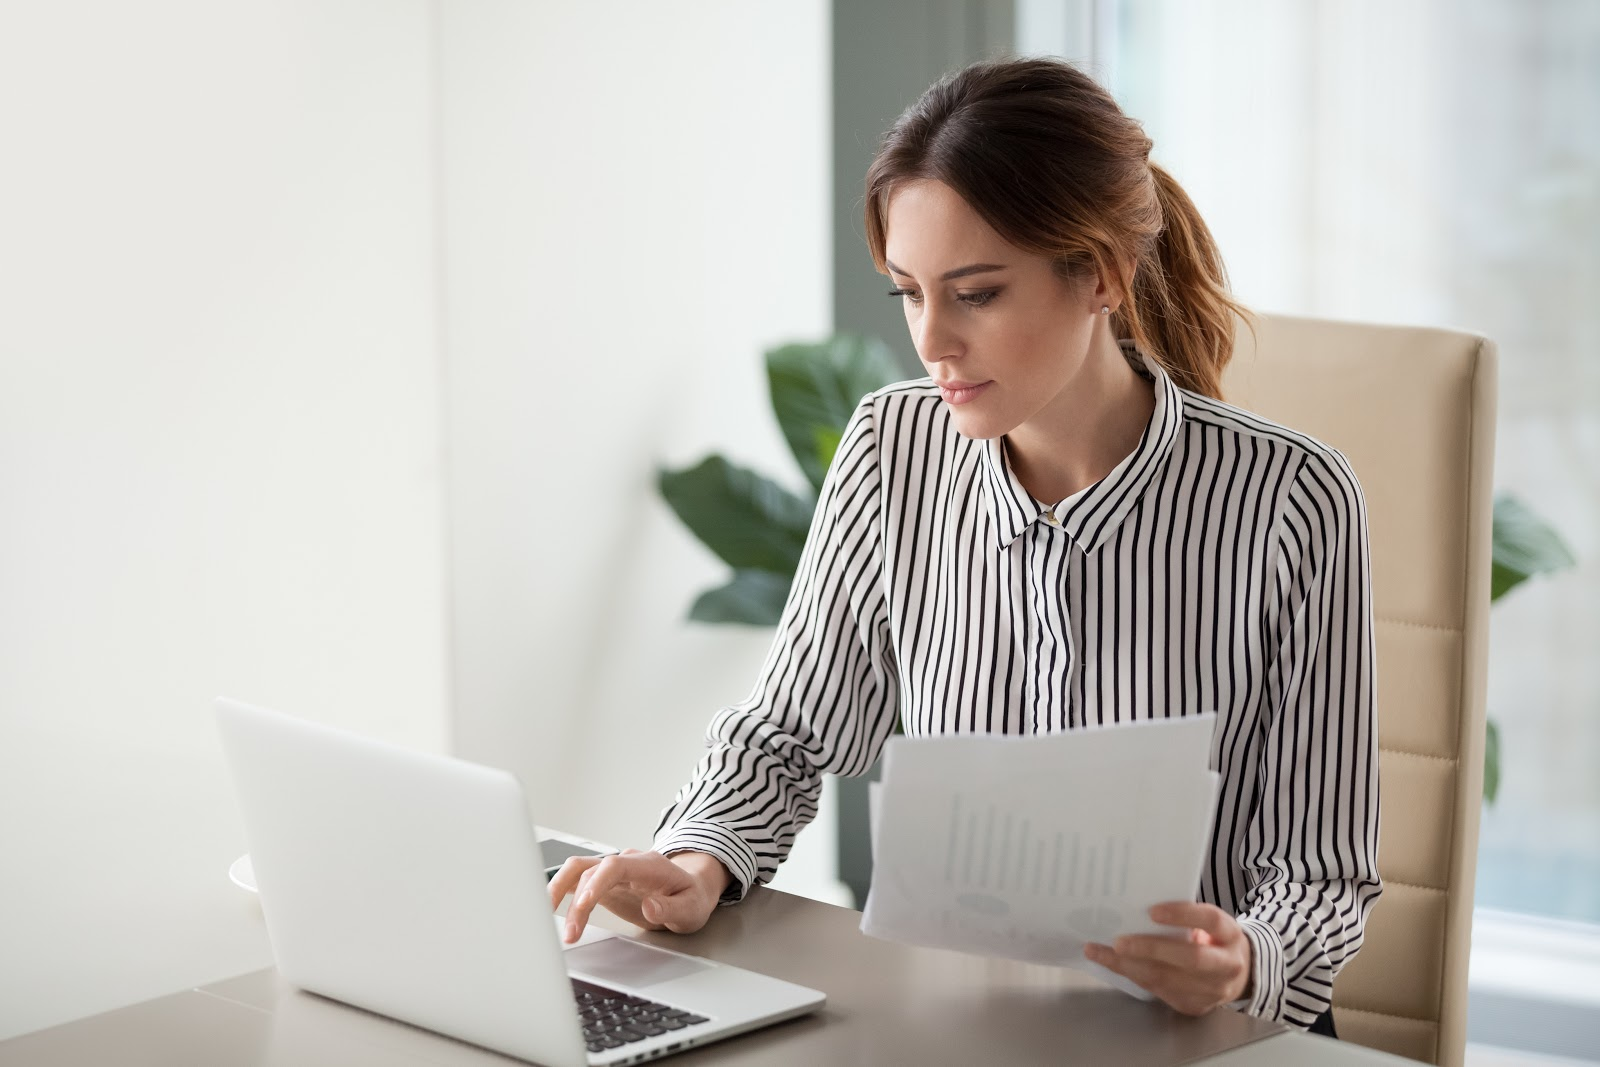 business analyst intern: woman working with her laptop and documents